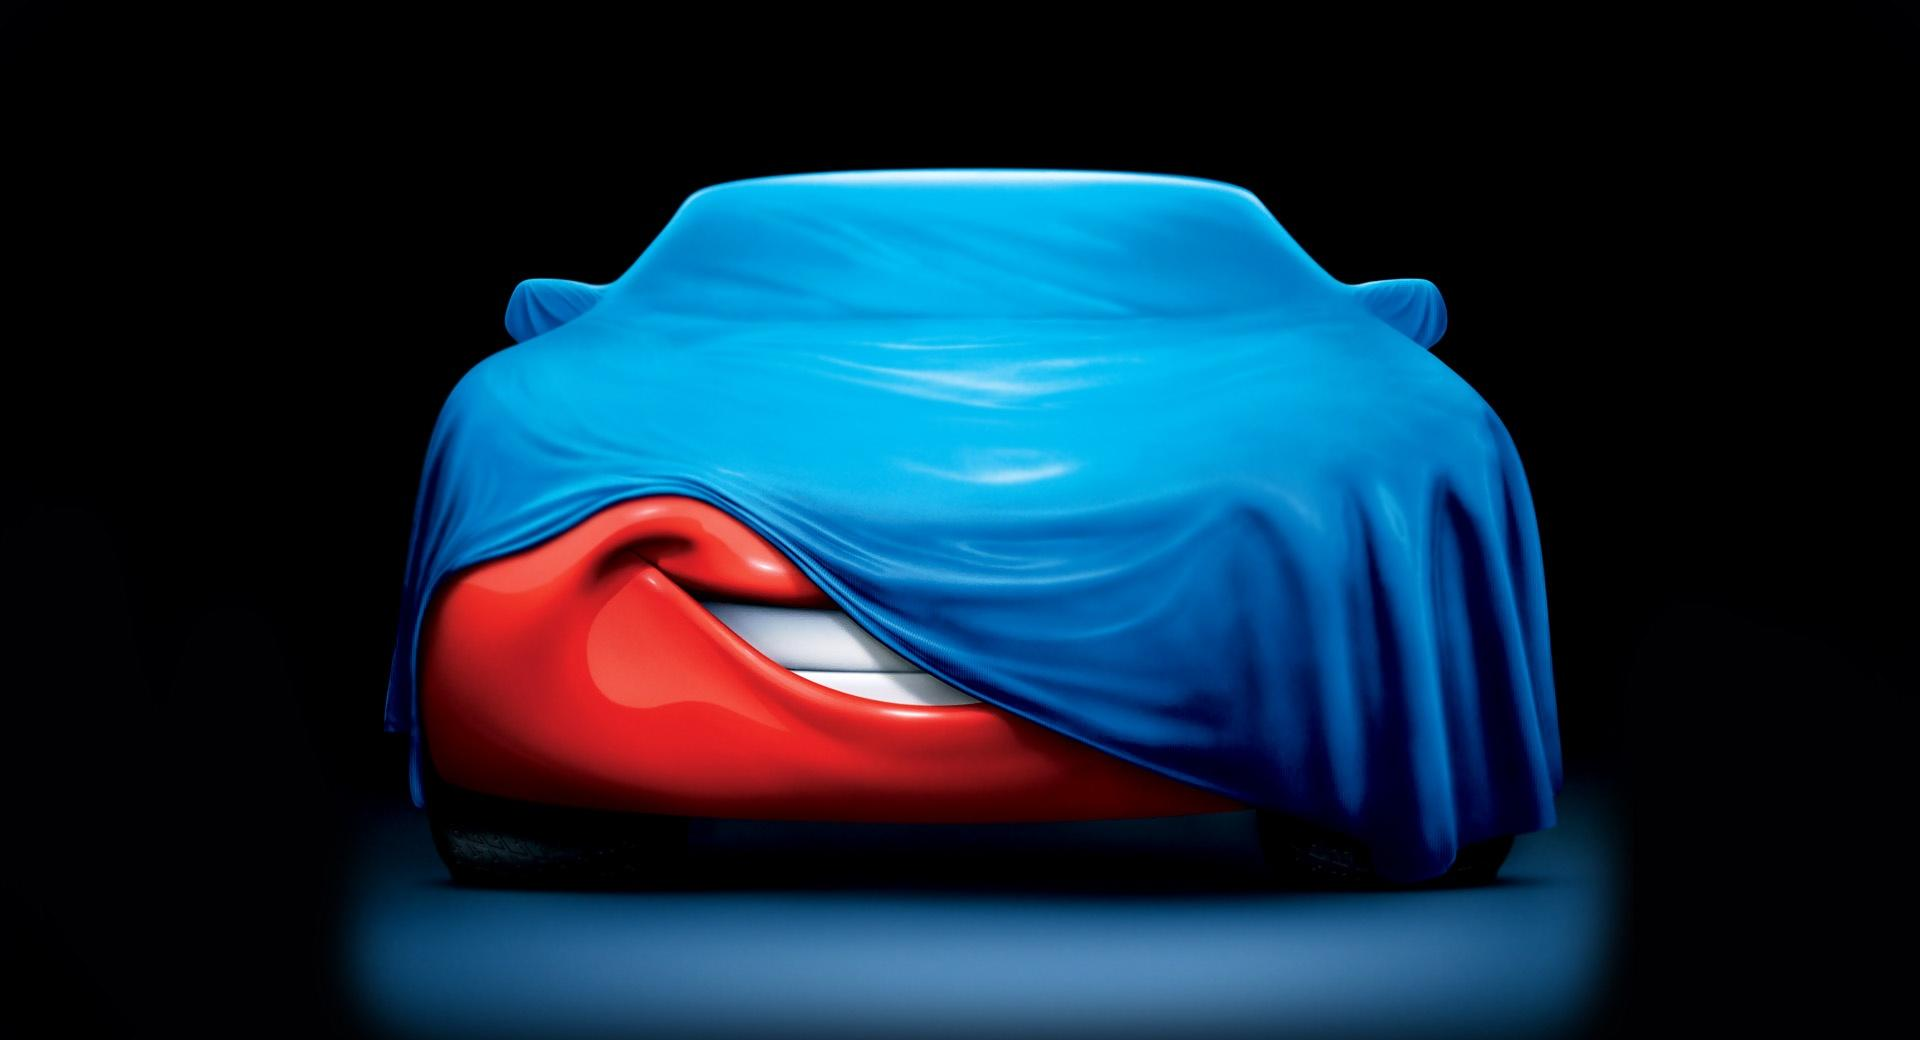 Covered Mcqueen Cars Movie at 2048 x 2048 iPad size wallpapers HD quality